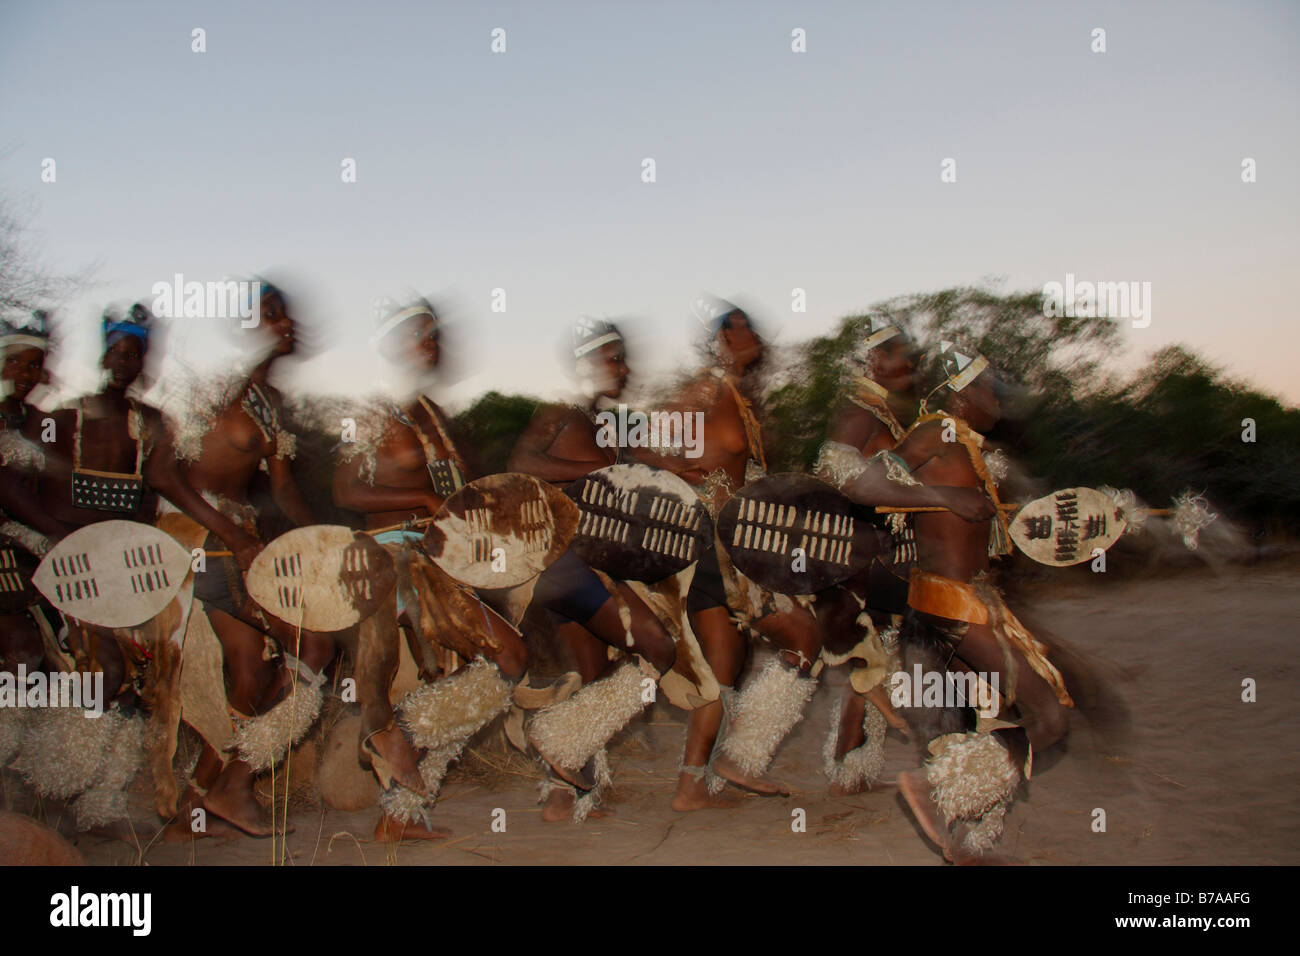 Abstract view of a group of Tonga dancers carrying shields during an evening outdoors dance performance - Stock Image